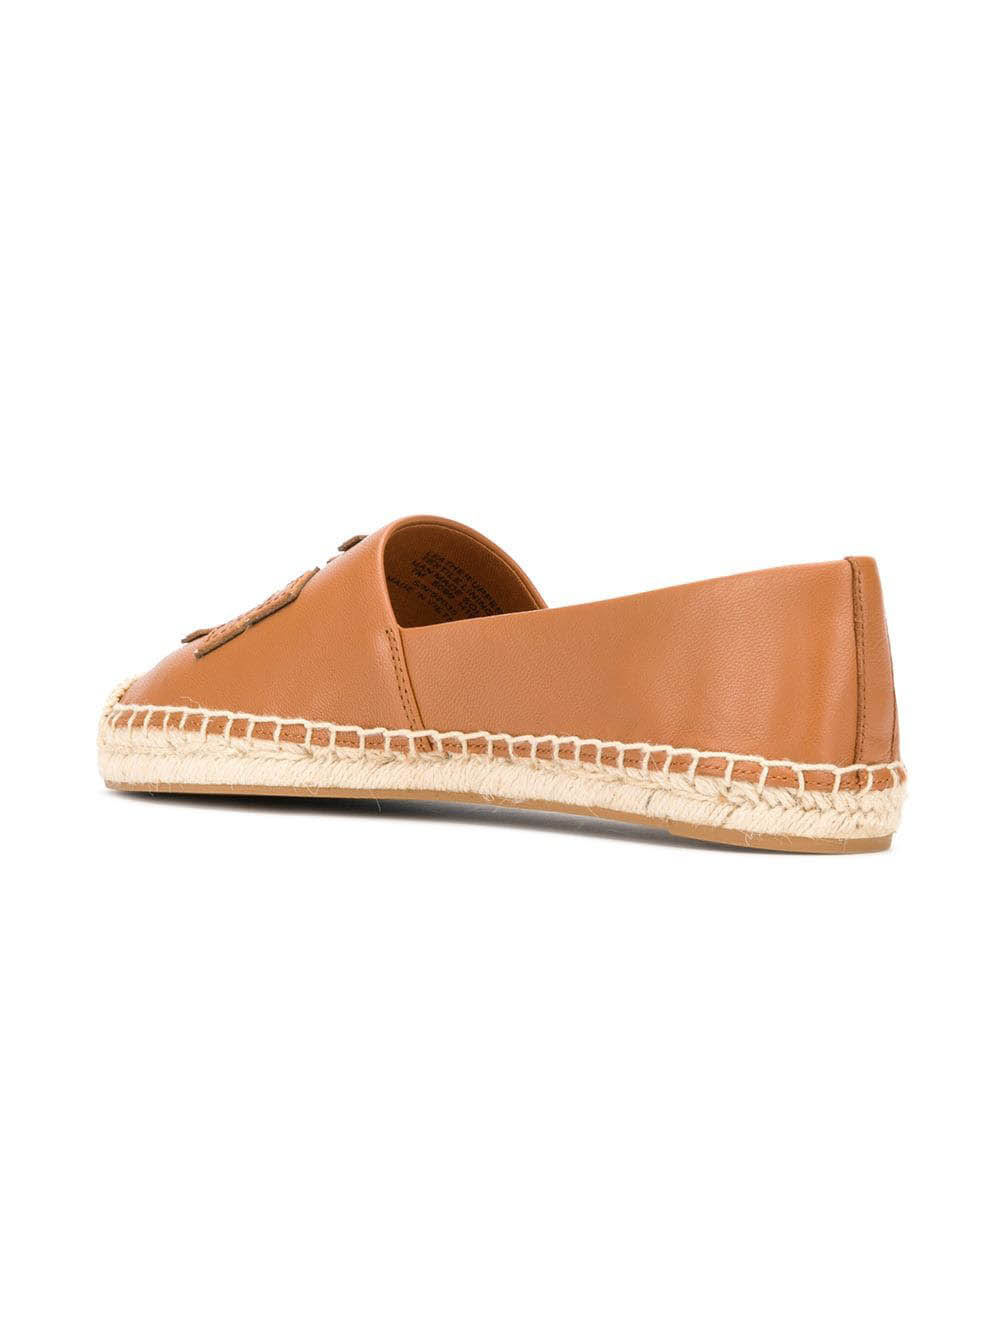 Picture of Tory Burch | Ines Espadrille